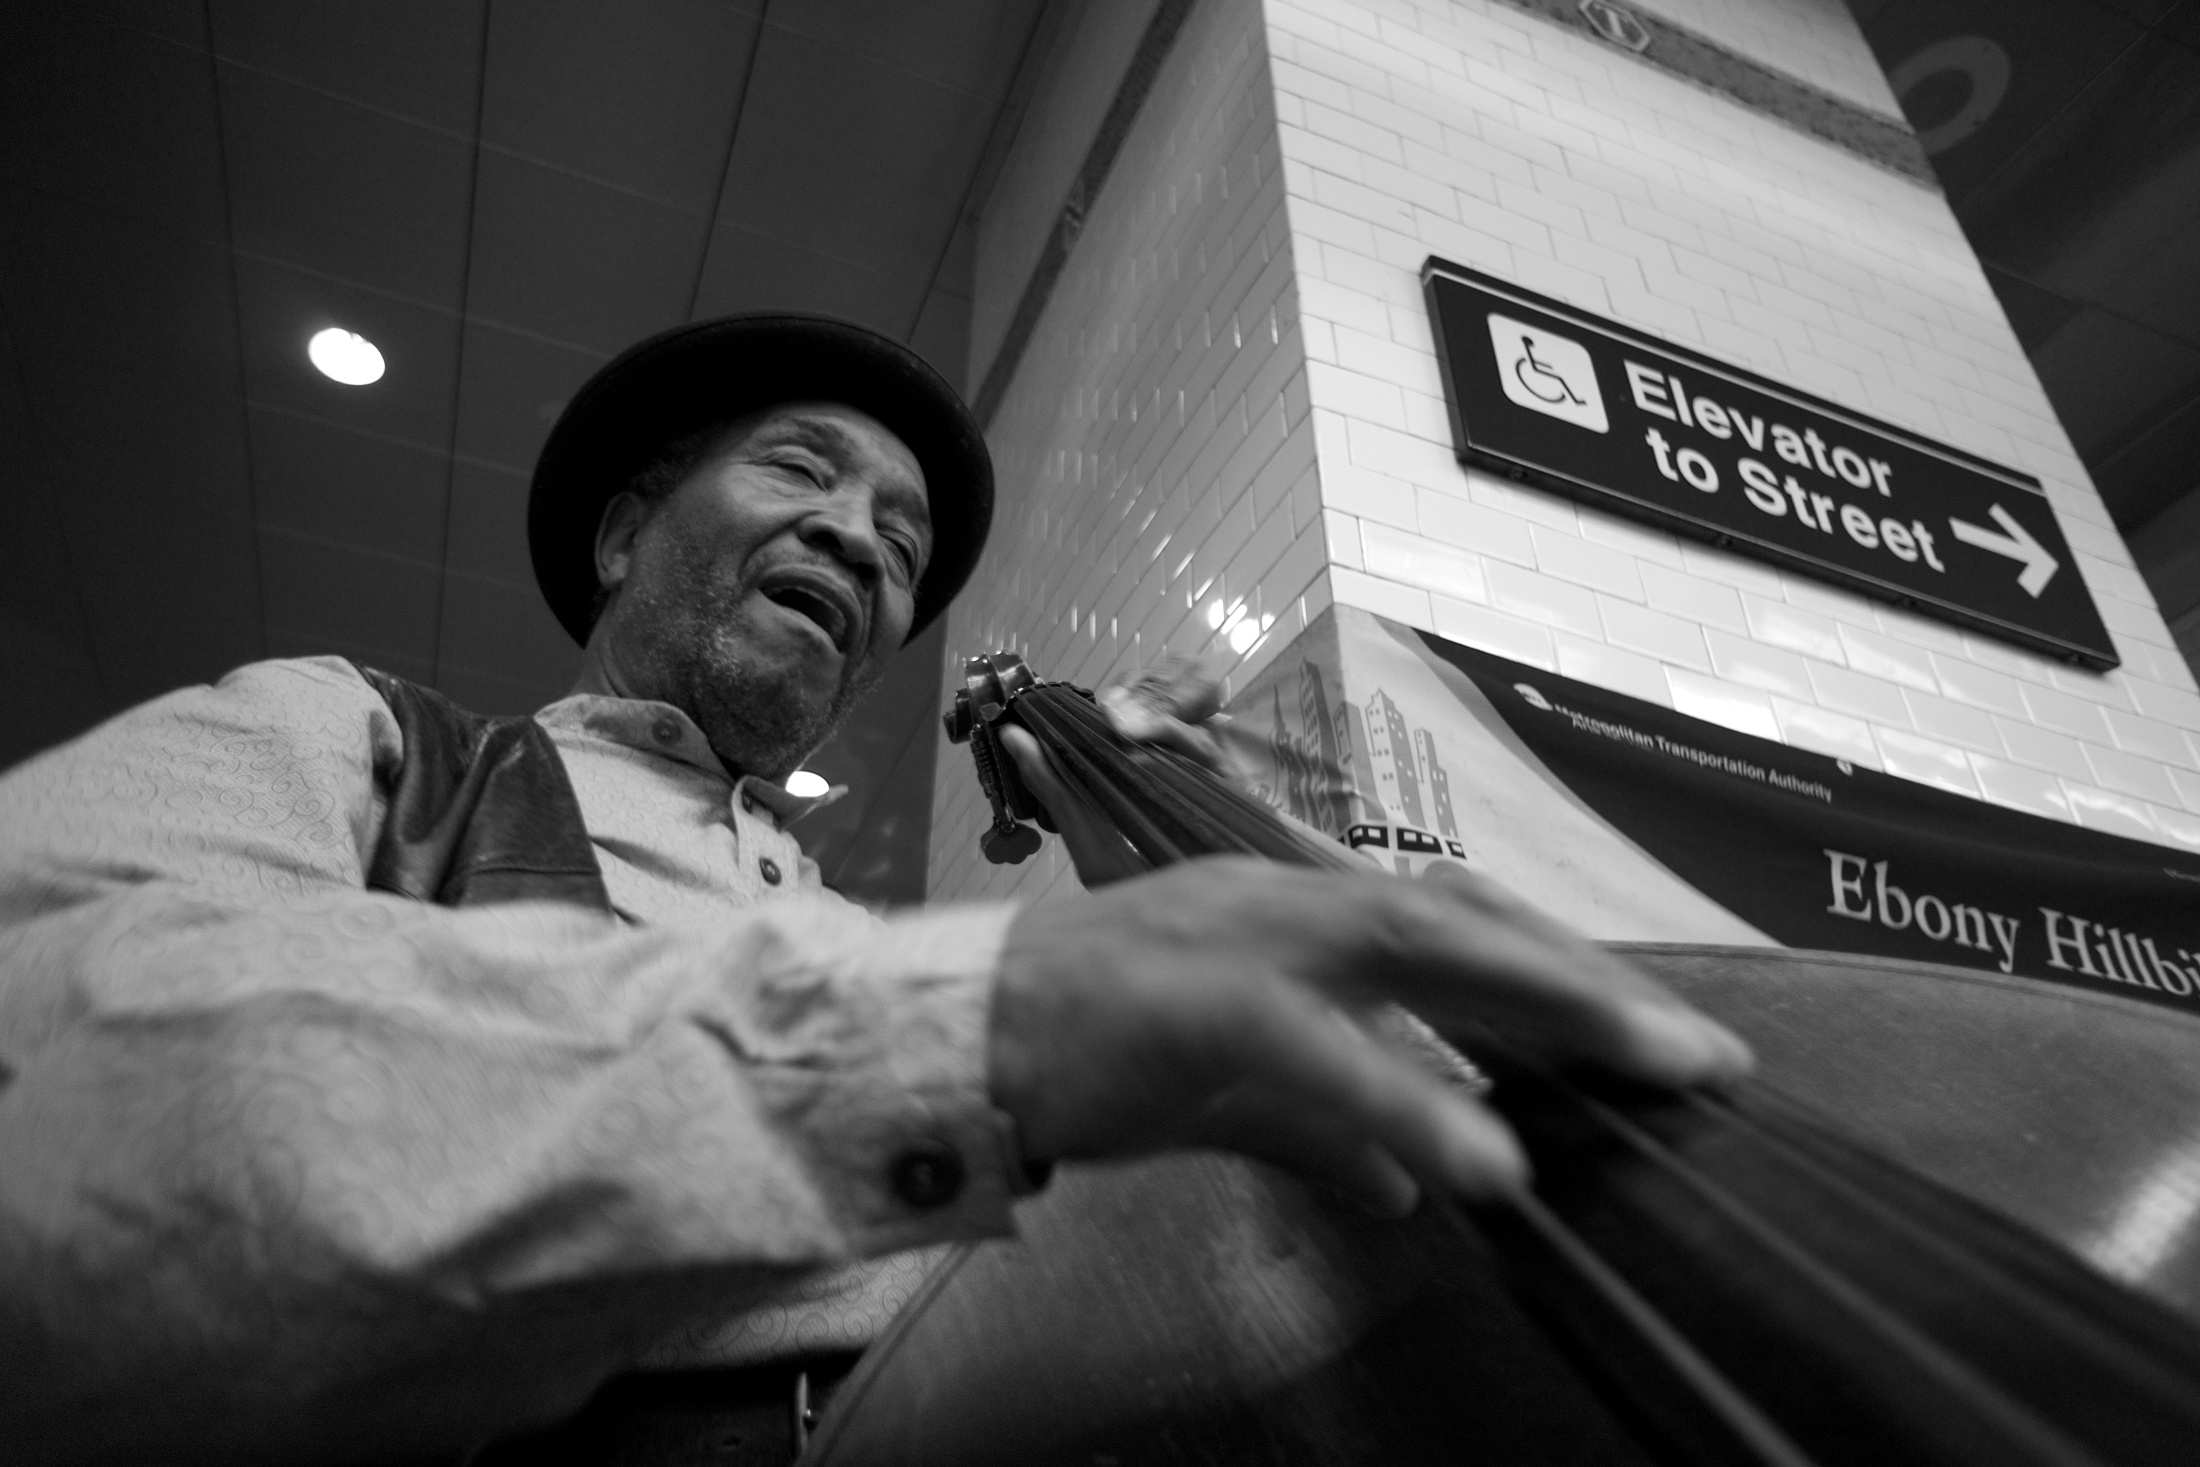 This bassist was part of a three-man band playing on a New York City subway platform.